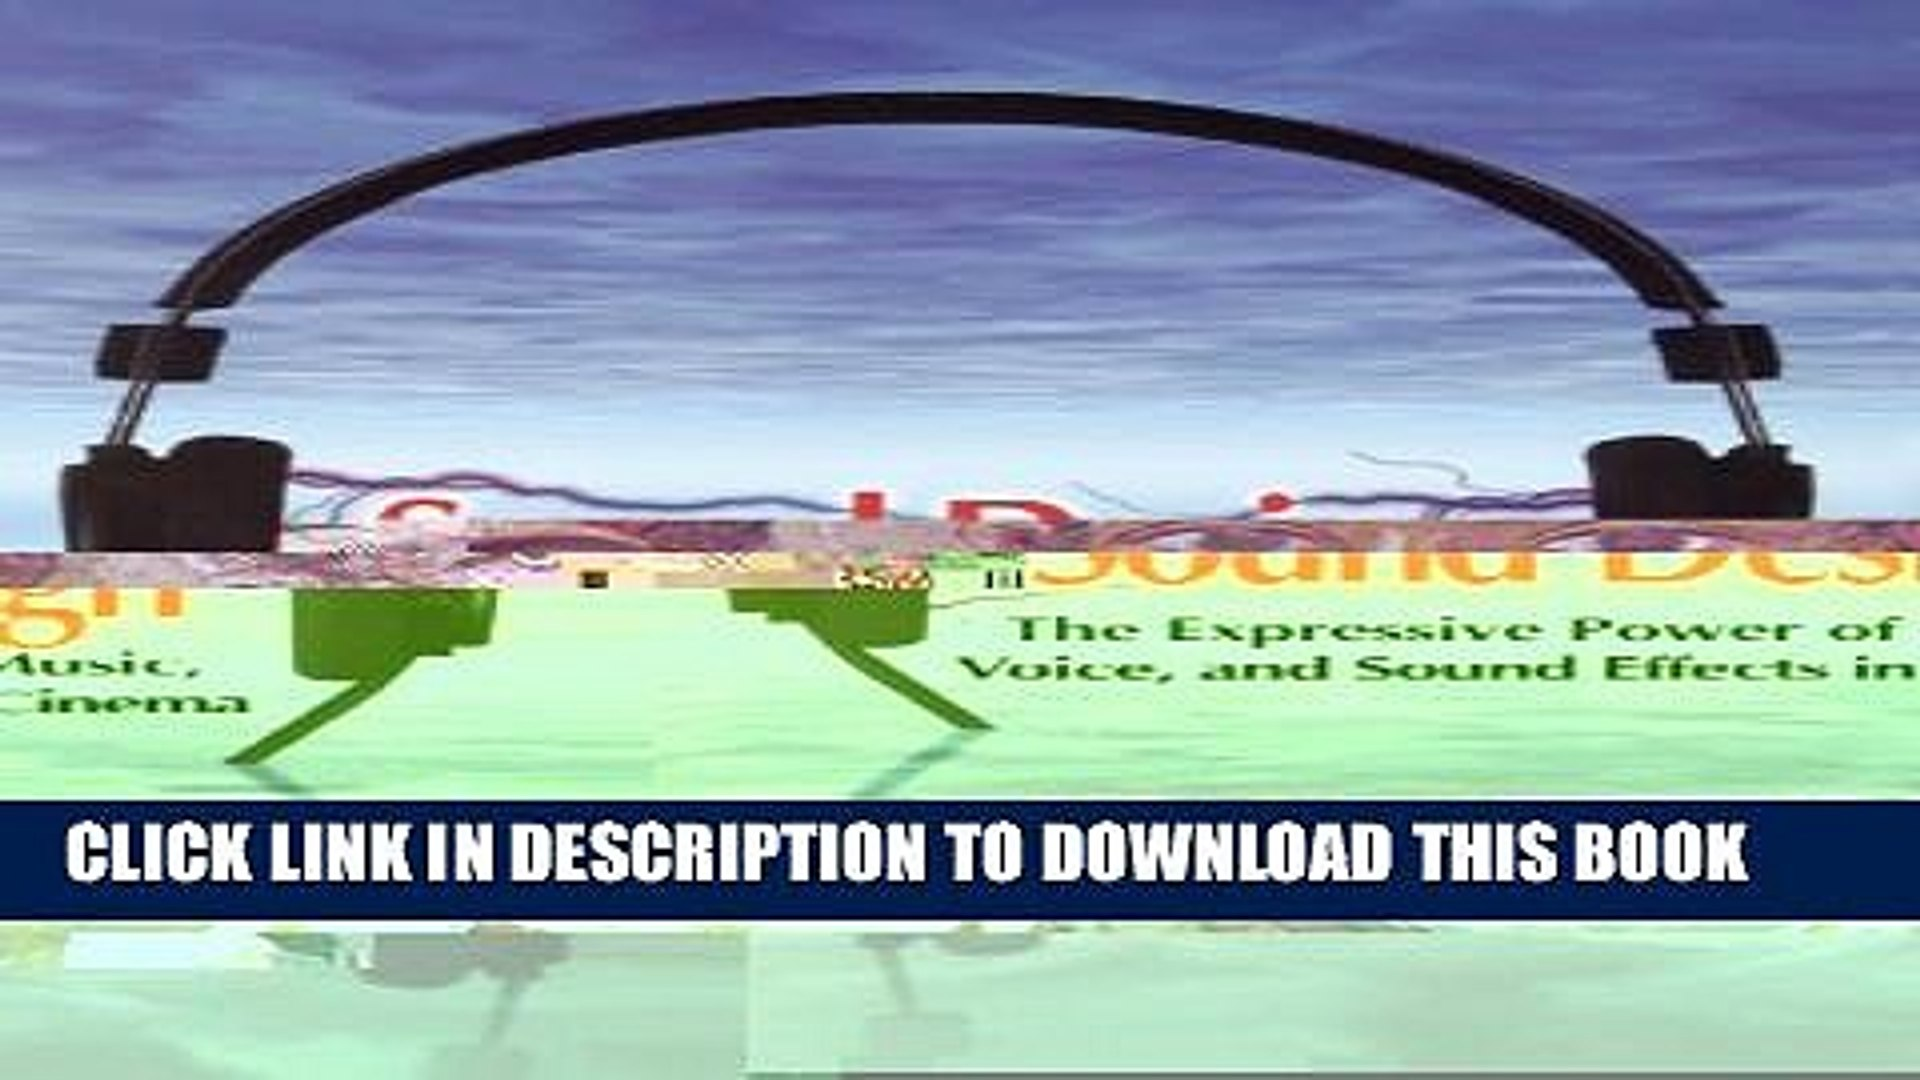 [PDF] Sound Design: The Expressive Power of Music, Voice and Sound Effects in Cinema Popular Online